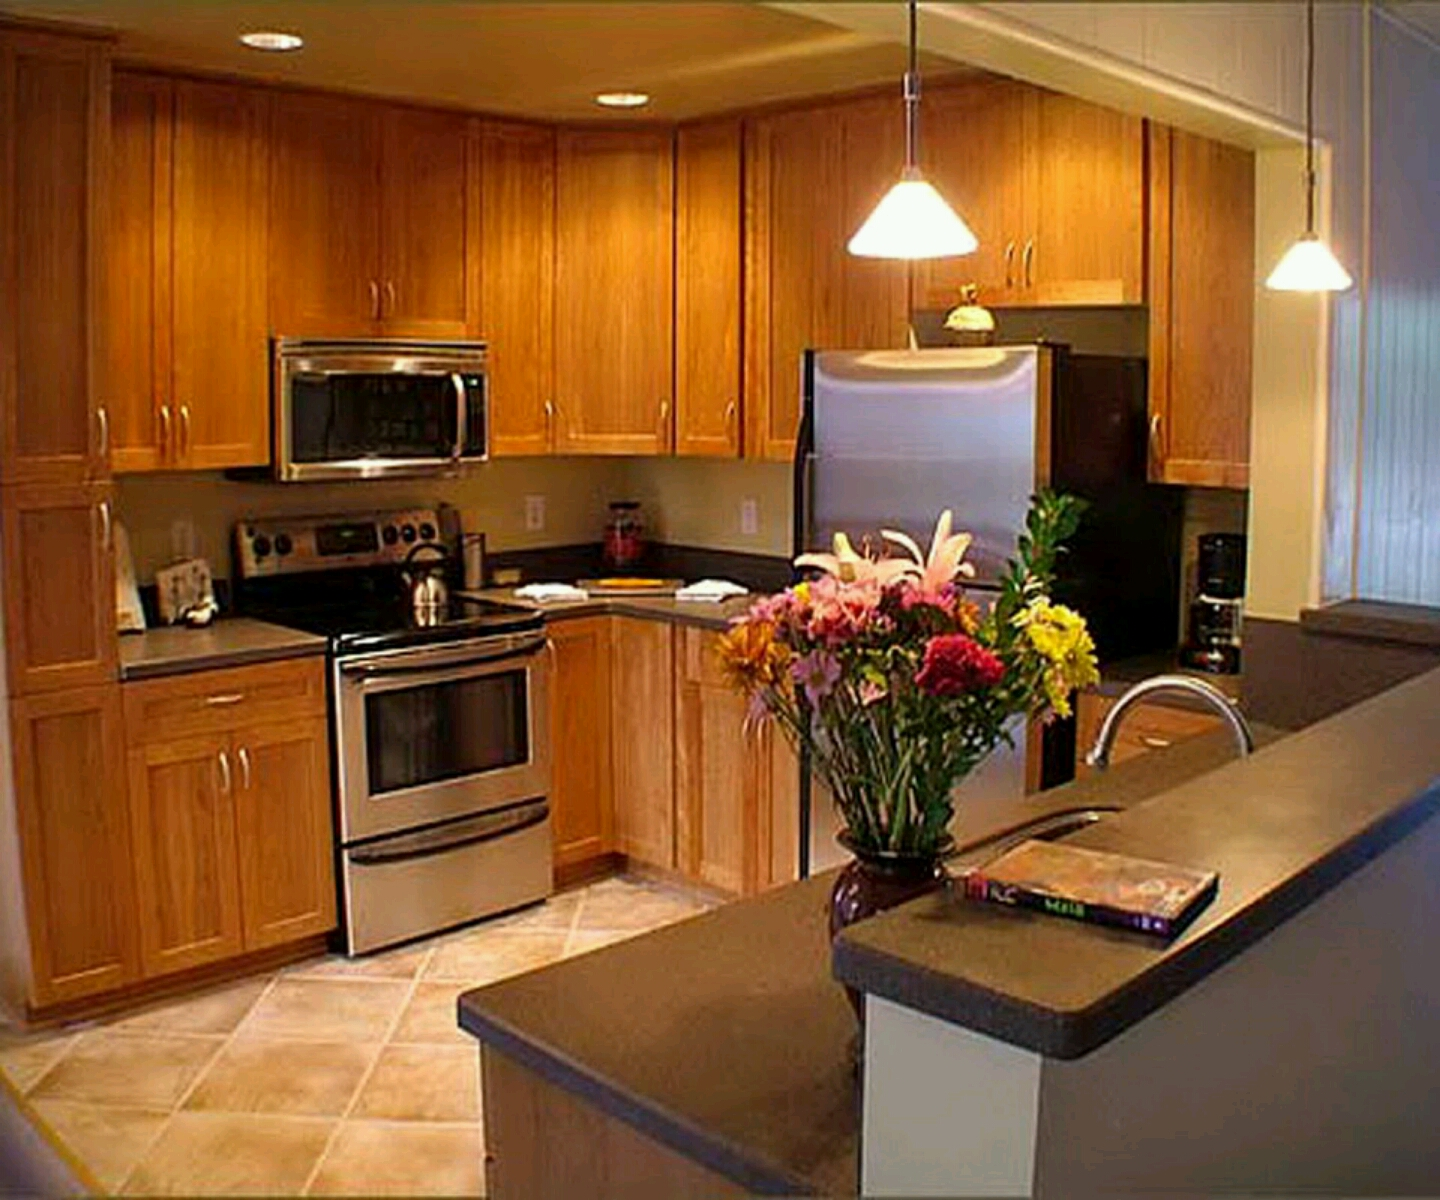 modern wooden kitchen cabinets designs furniture gallery - Kitchen Design Ideas With Oak Cabinets